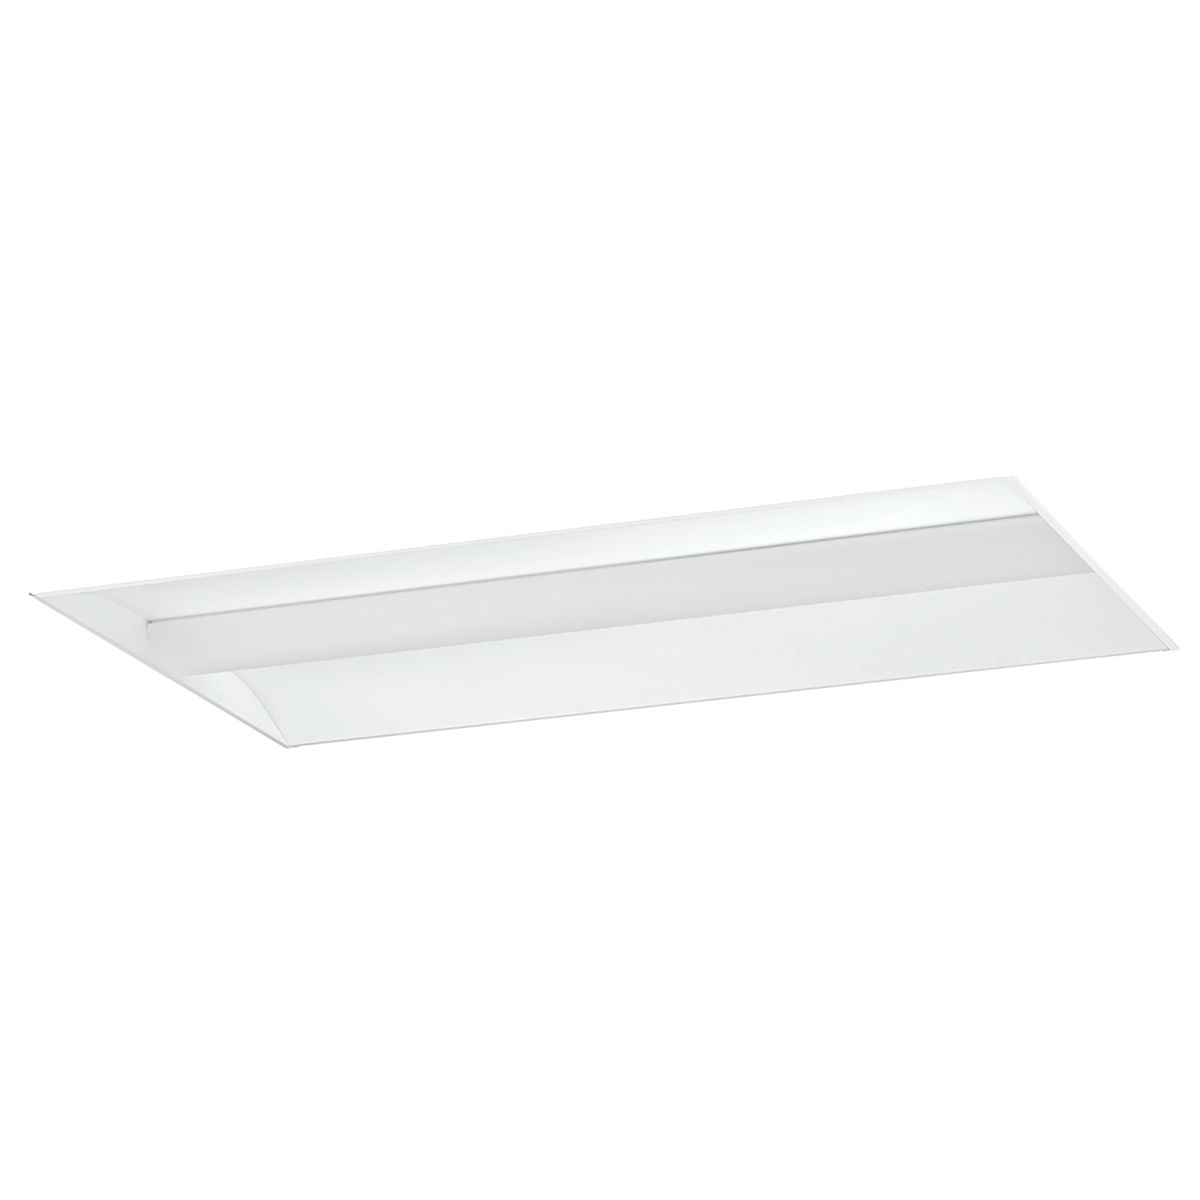 LCAT22-40MLG-EDU COLUMBIA LIGHTING, 2'X2' LED CONTEMPORARY ARCHITECTURAL TROFFER, 4000K, 3326 LUMENS, 0-10V DIMMING, 120-277V